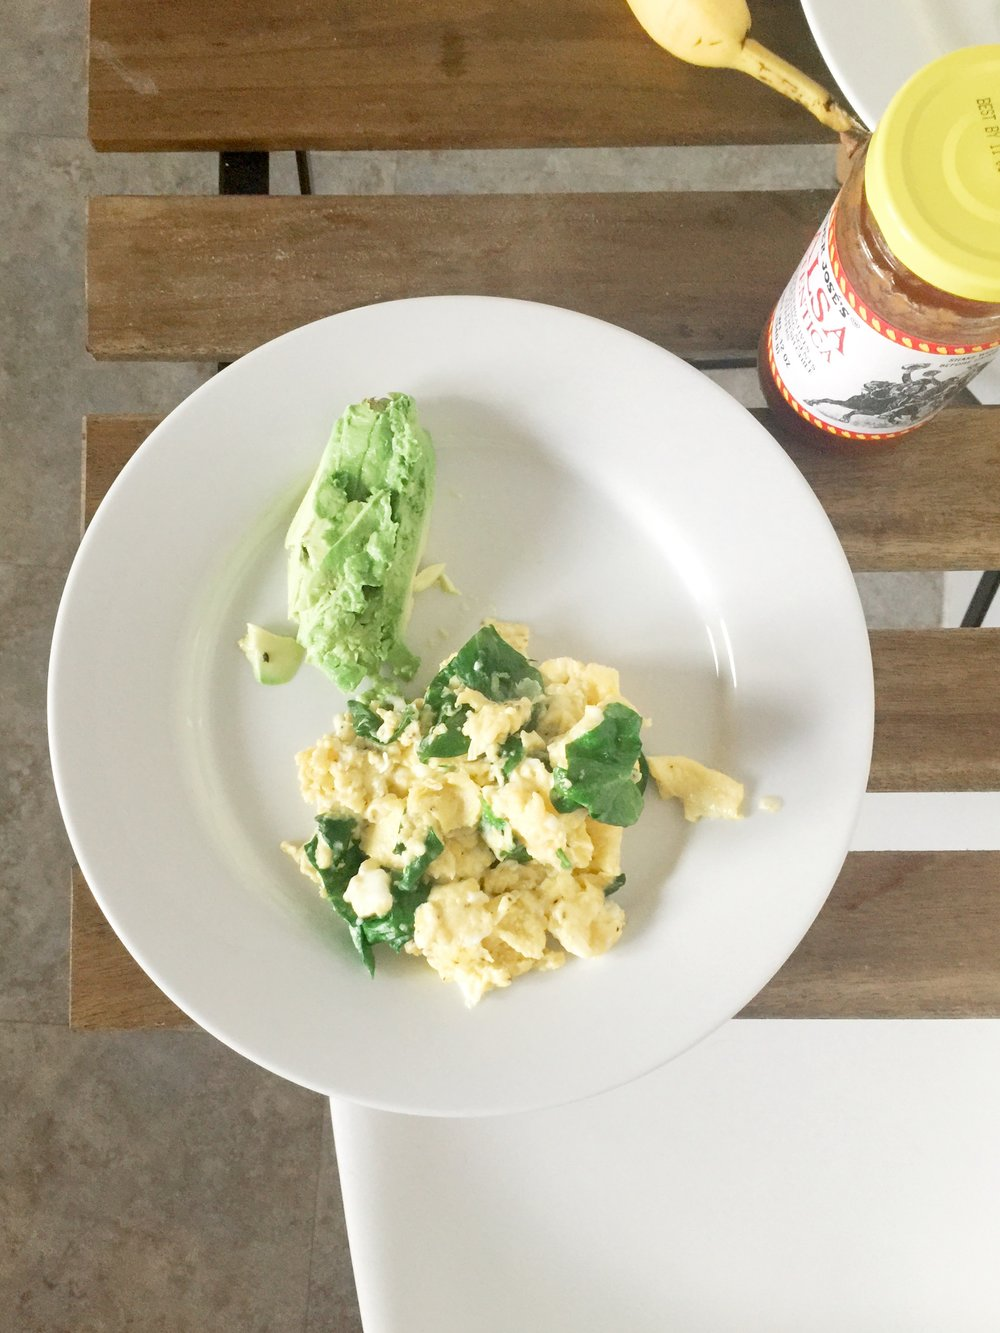 Spinach and eggs with avocado and salsa